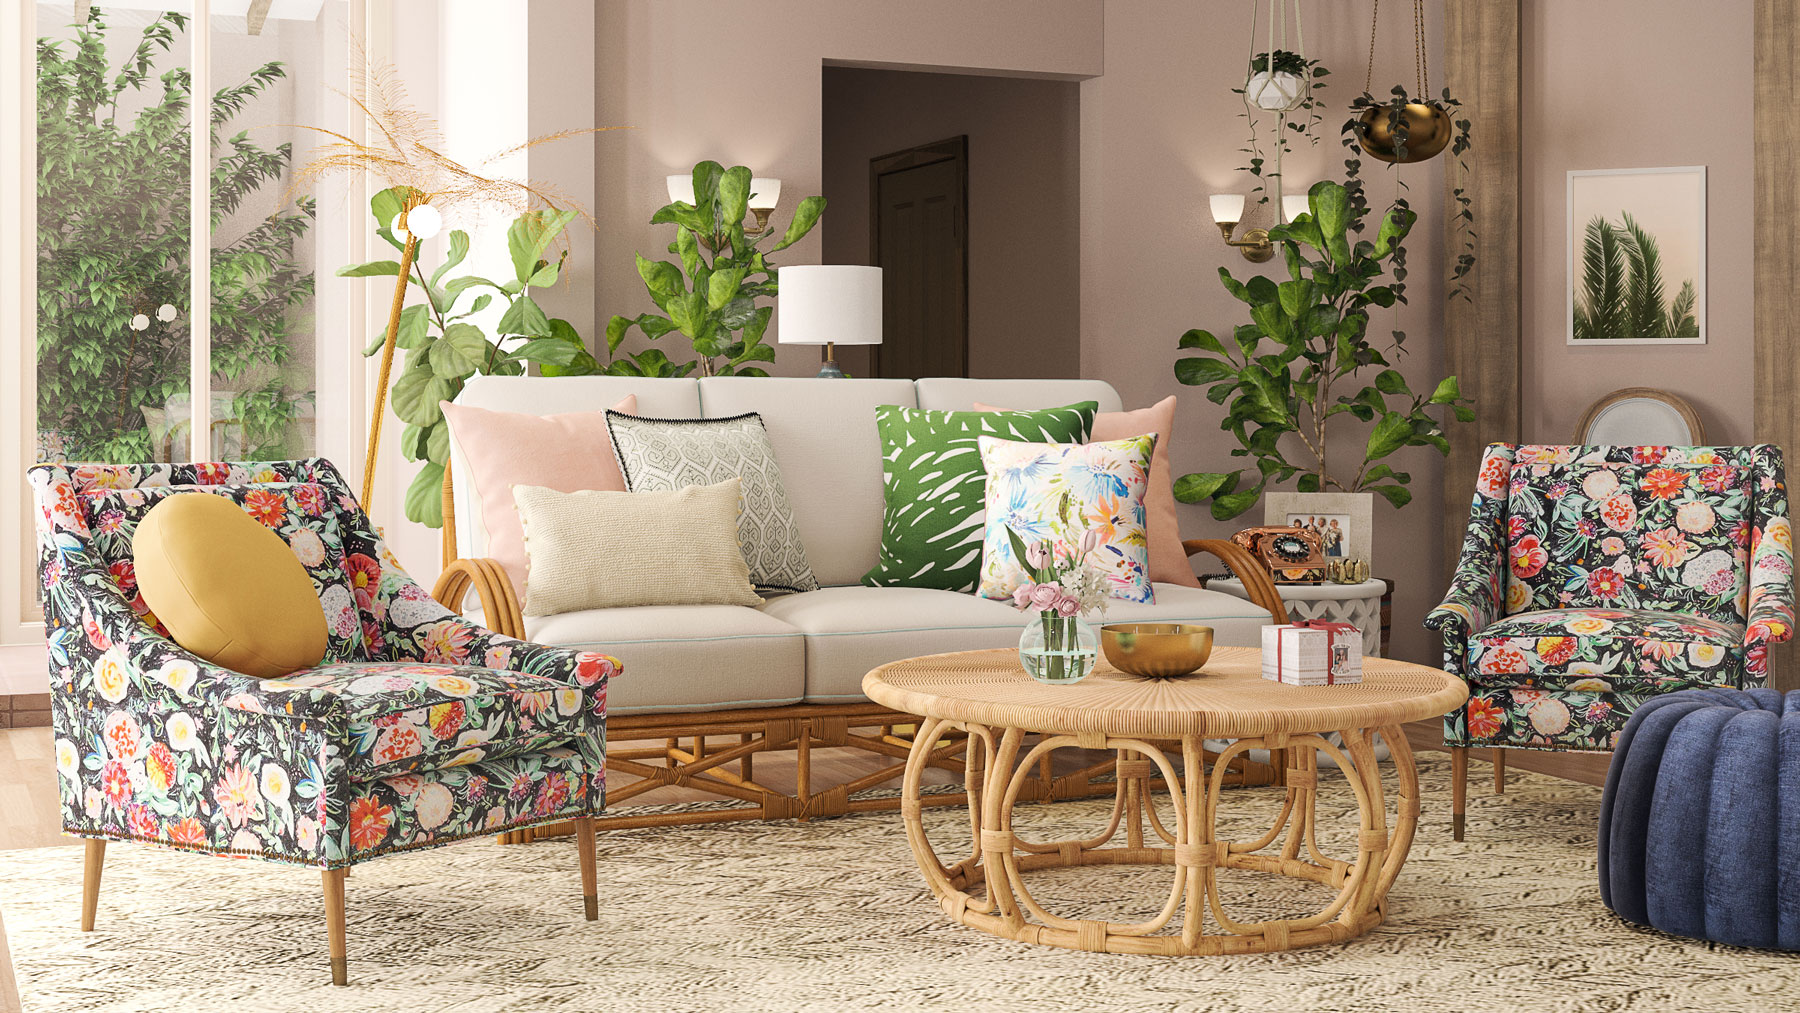 The Golden Girls House Updated - The Living Room